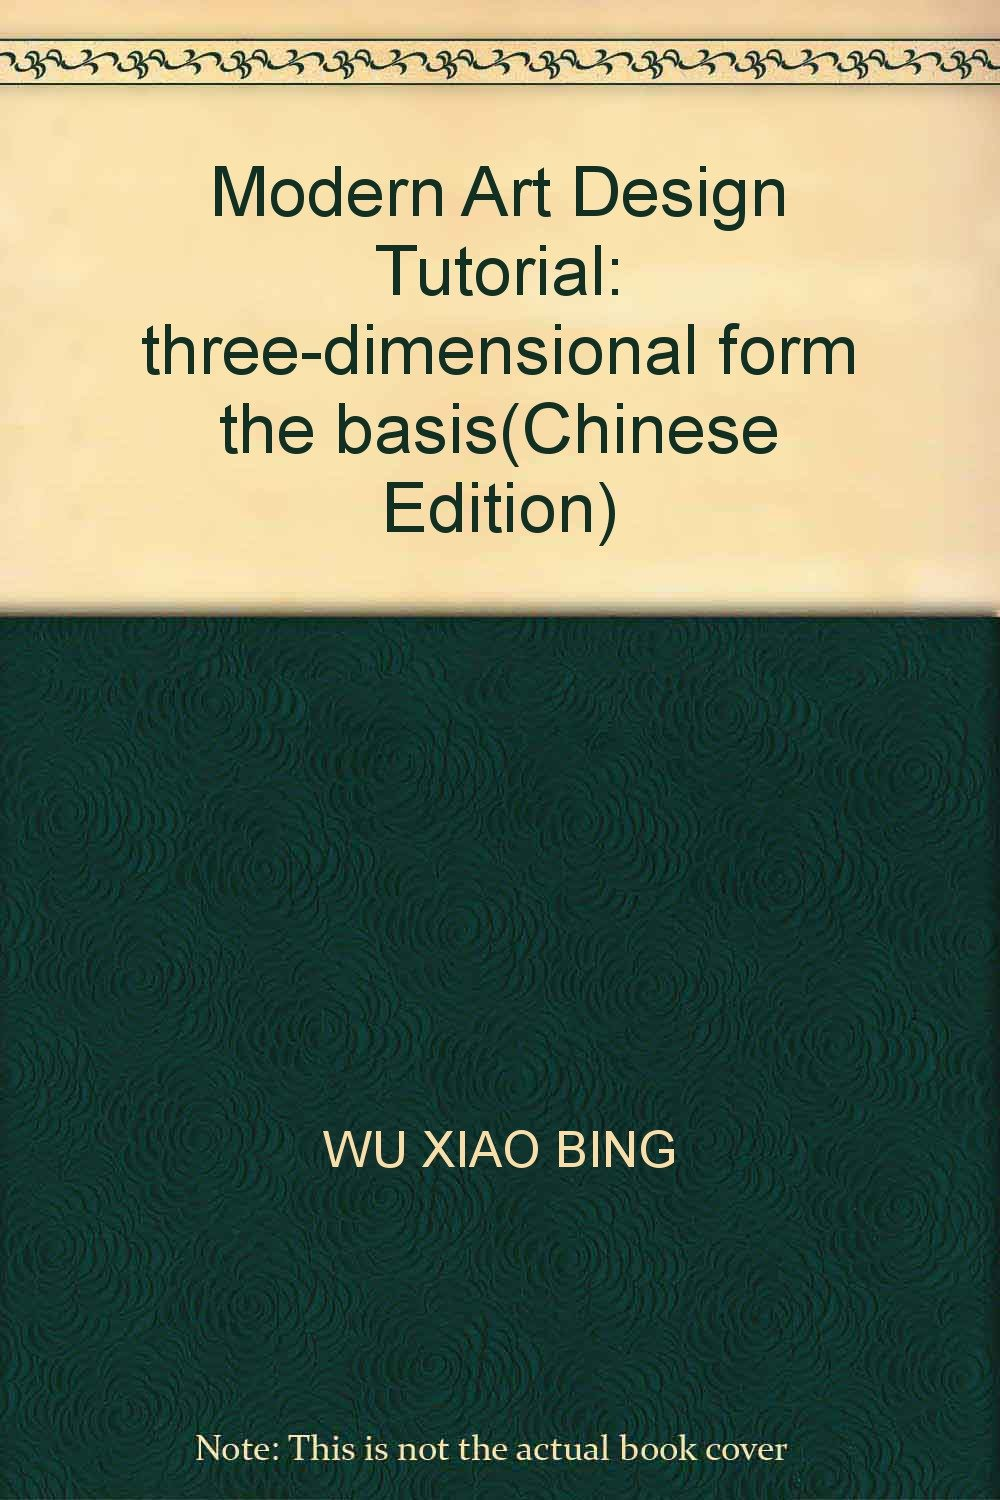 Download Modern Art Design Tutorial: three-dimensional form the basis(Chinese Edition) PDF